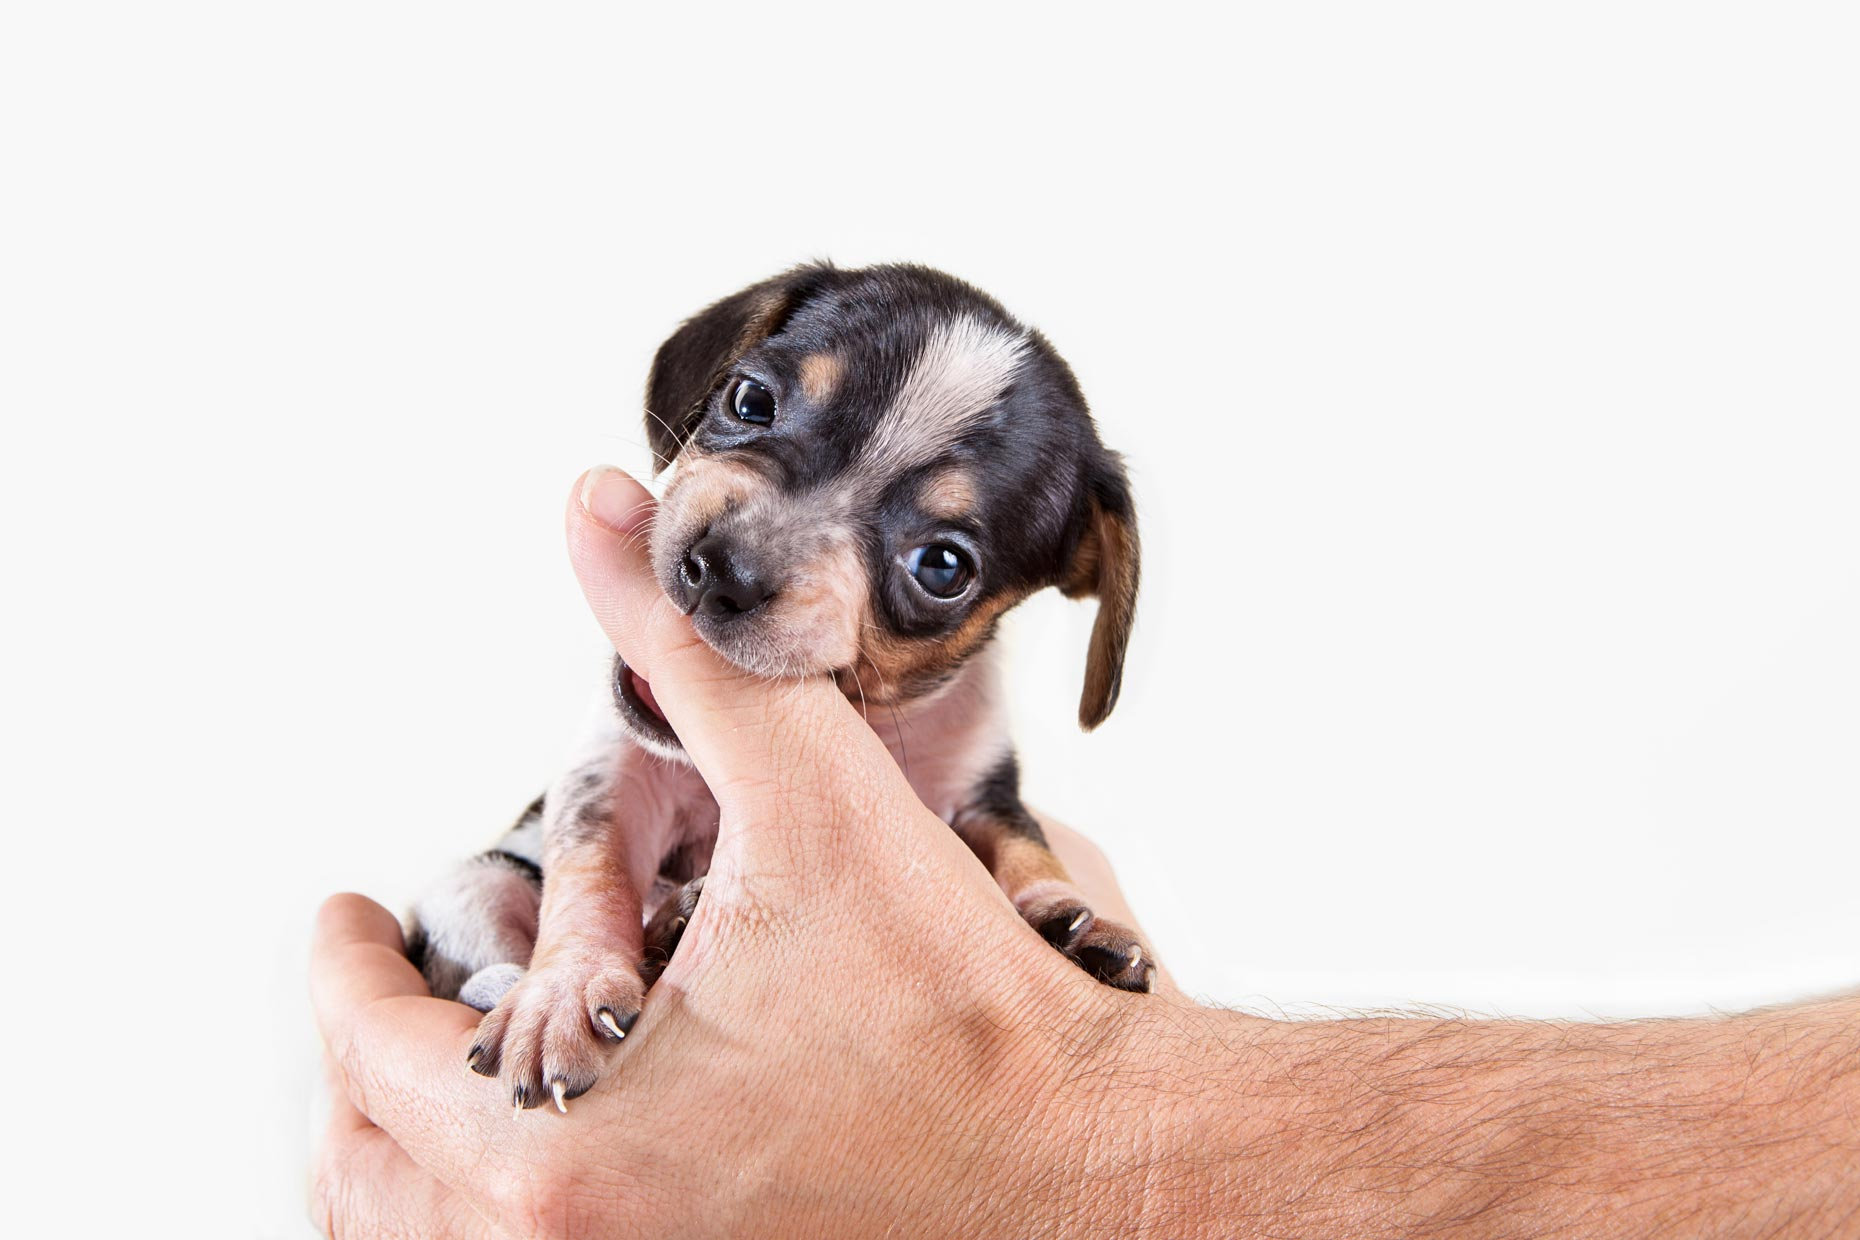 Puppy Eats Hands | Commercial + Lifestyle Dog Photographer | Hannele Lahti